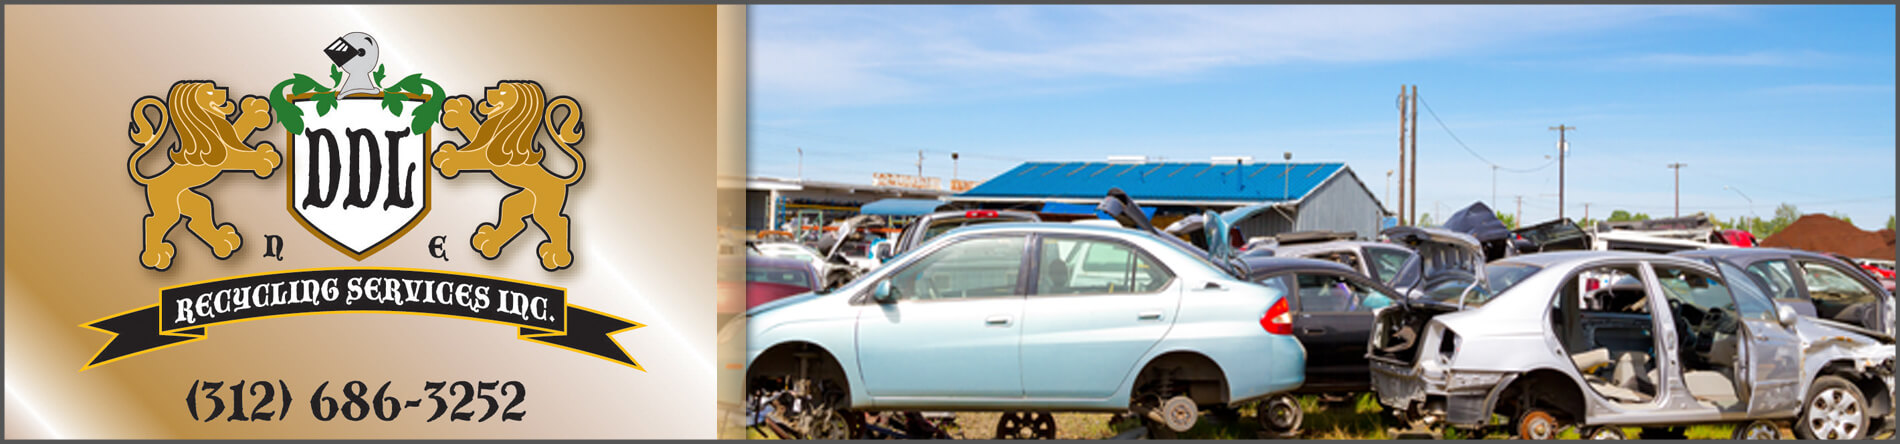 DDL Recycling Services is a Junk Car Recycling Center in Chicago, IL